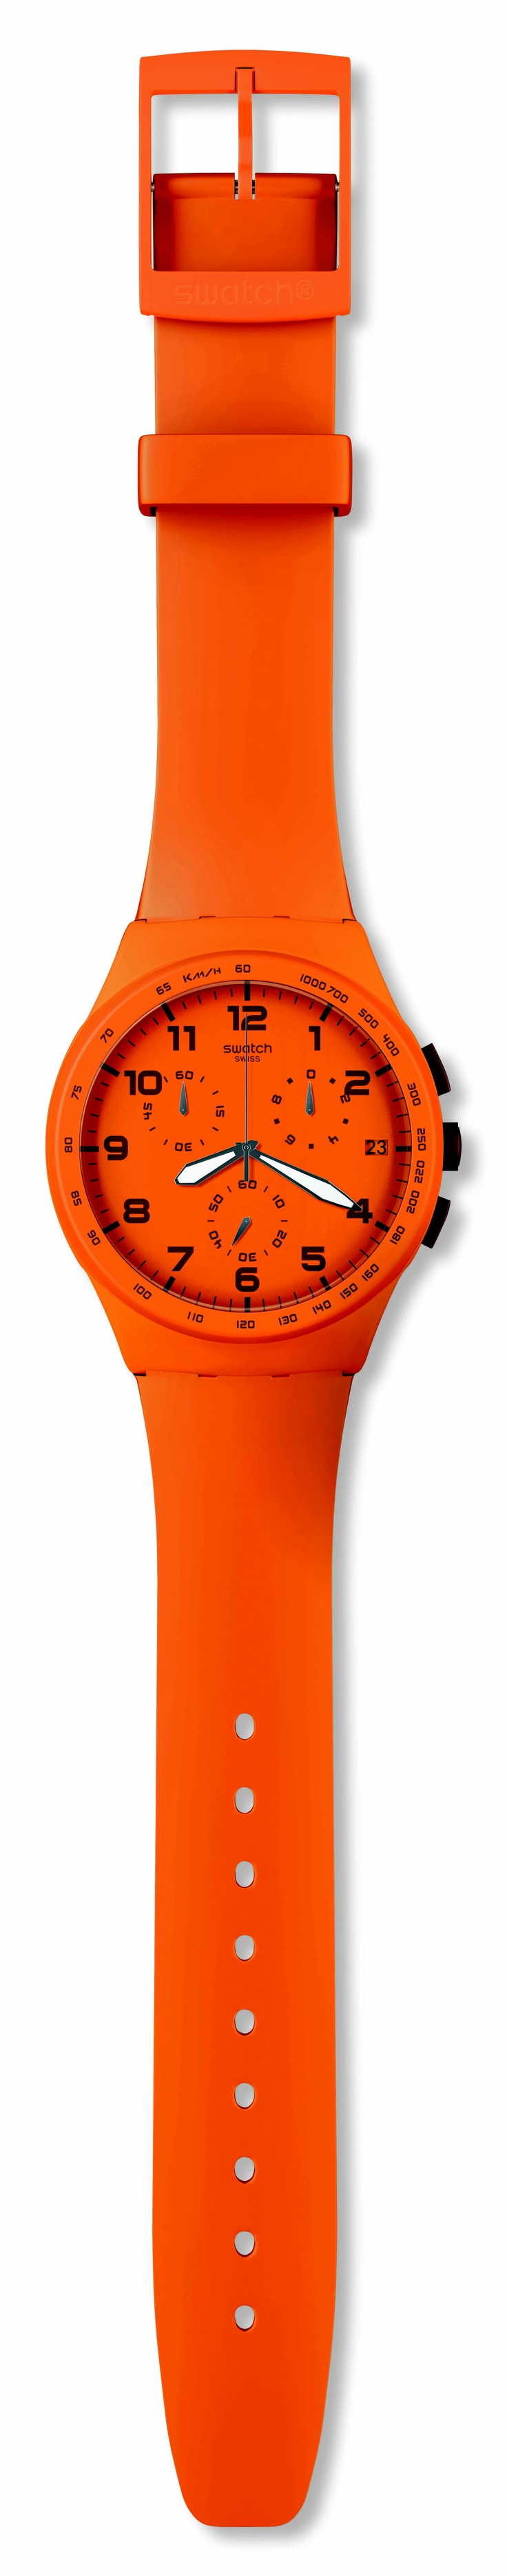 Watch from the Swatch Group